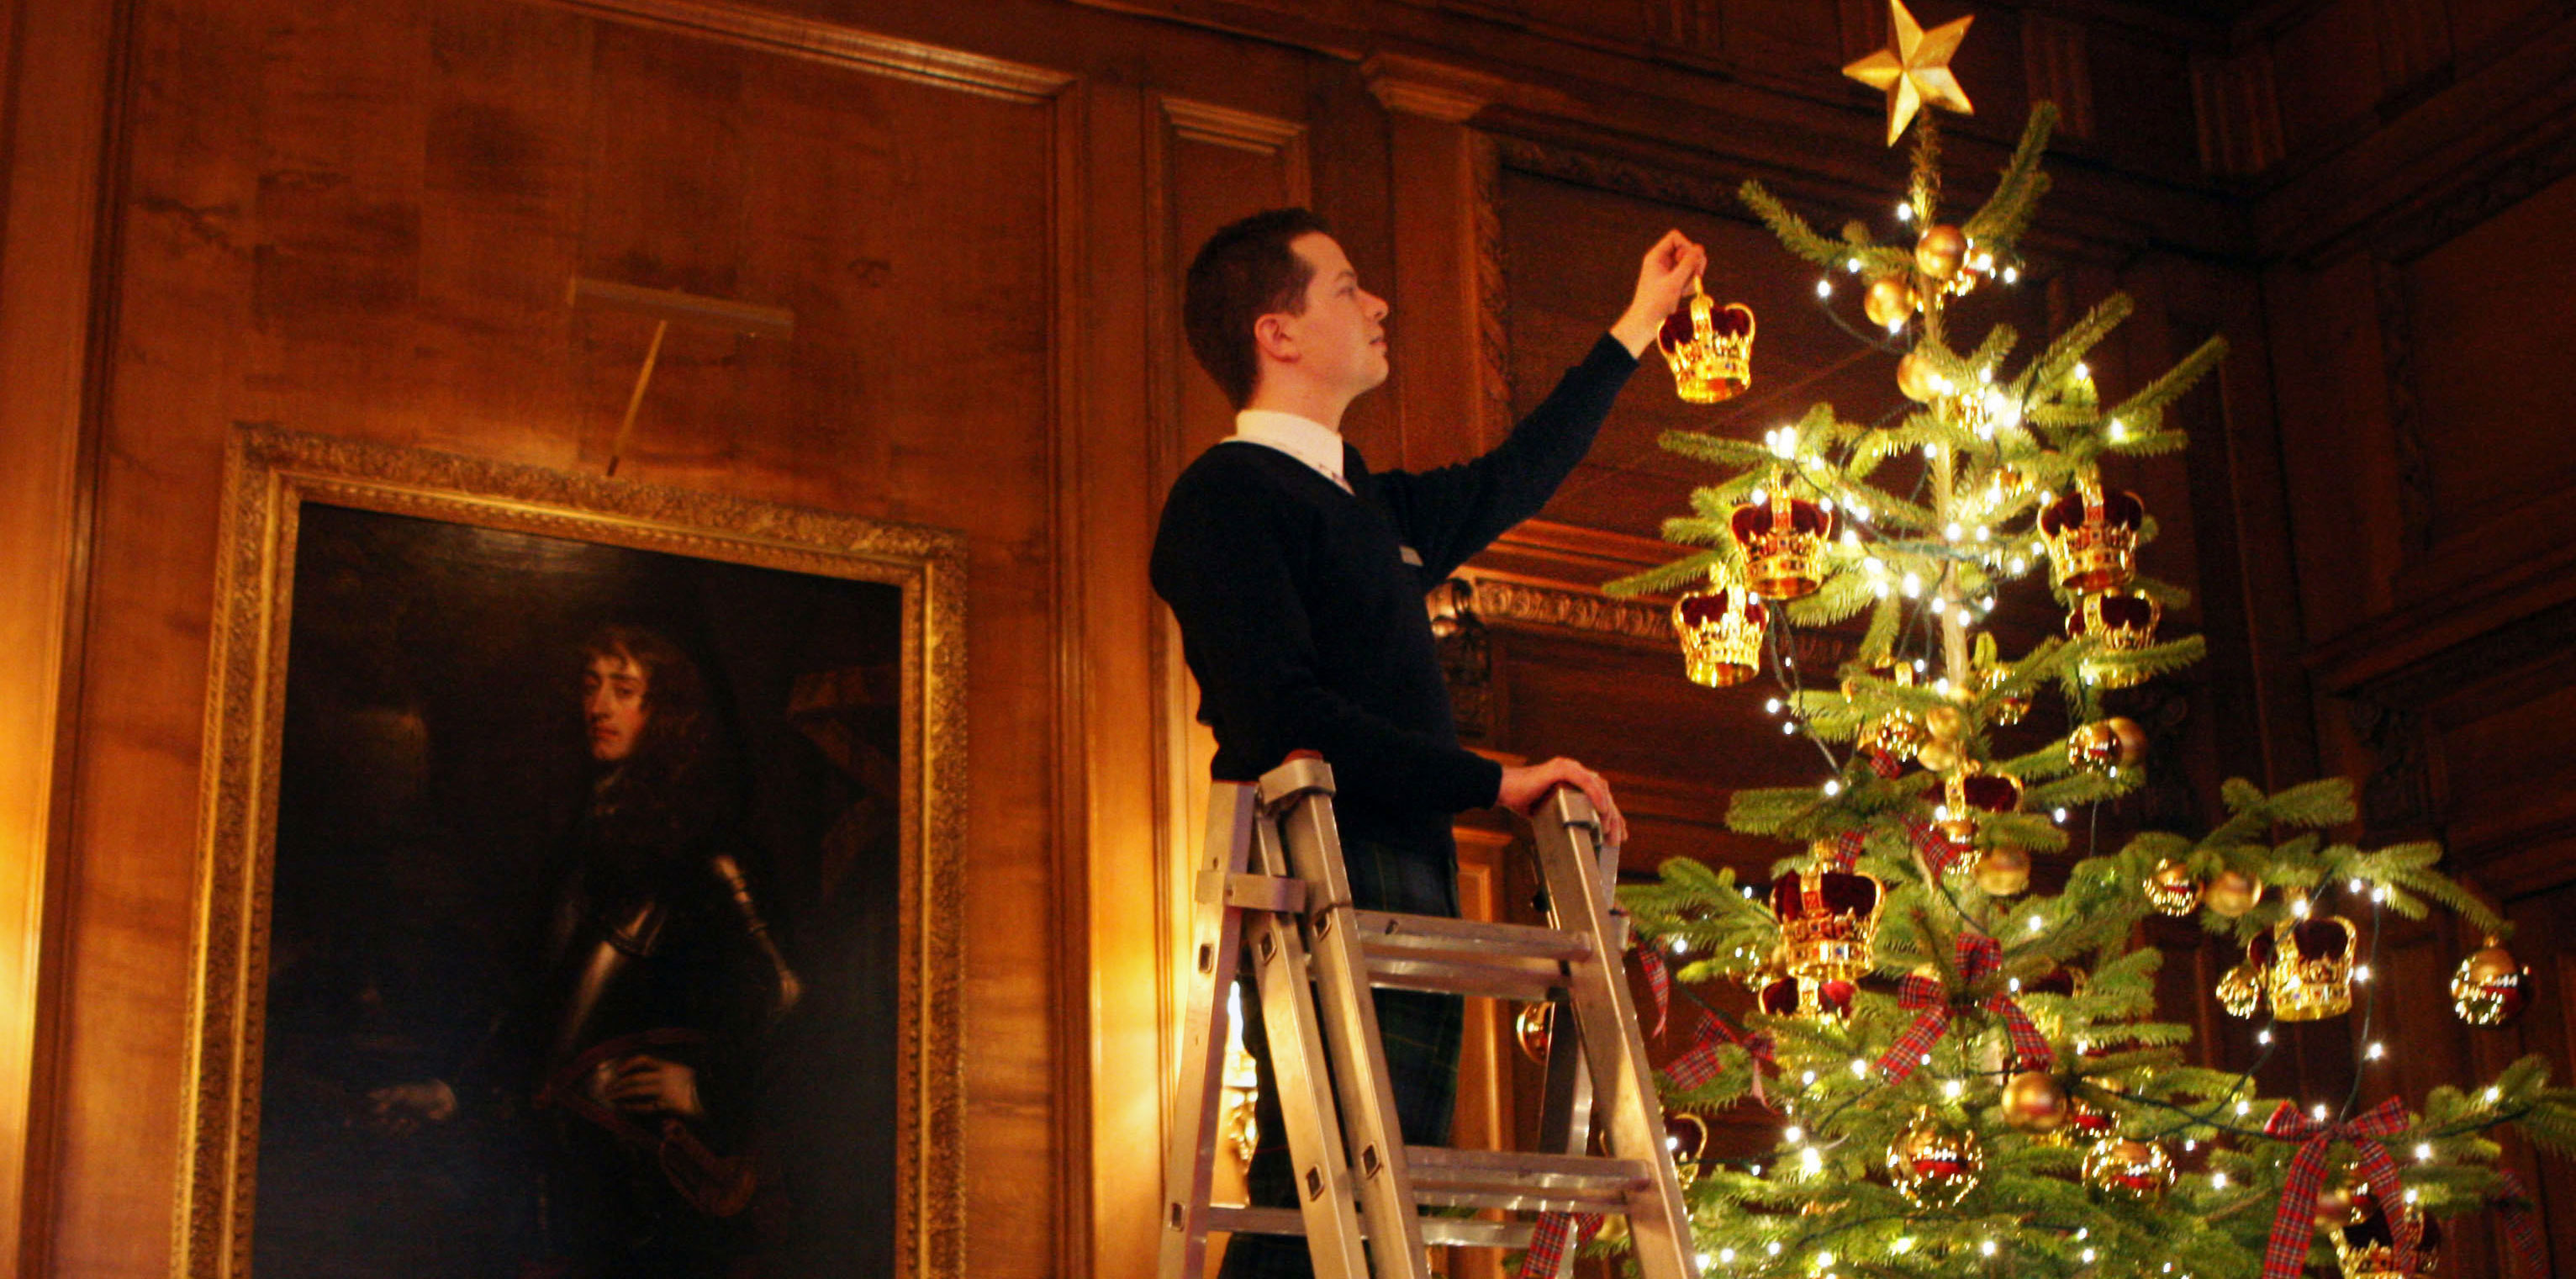 Decorating the Royal Christmas tree at Palace of Holyrood